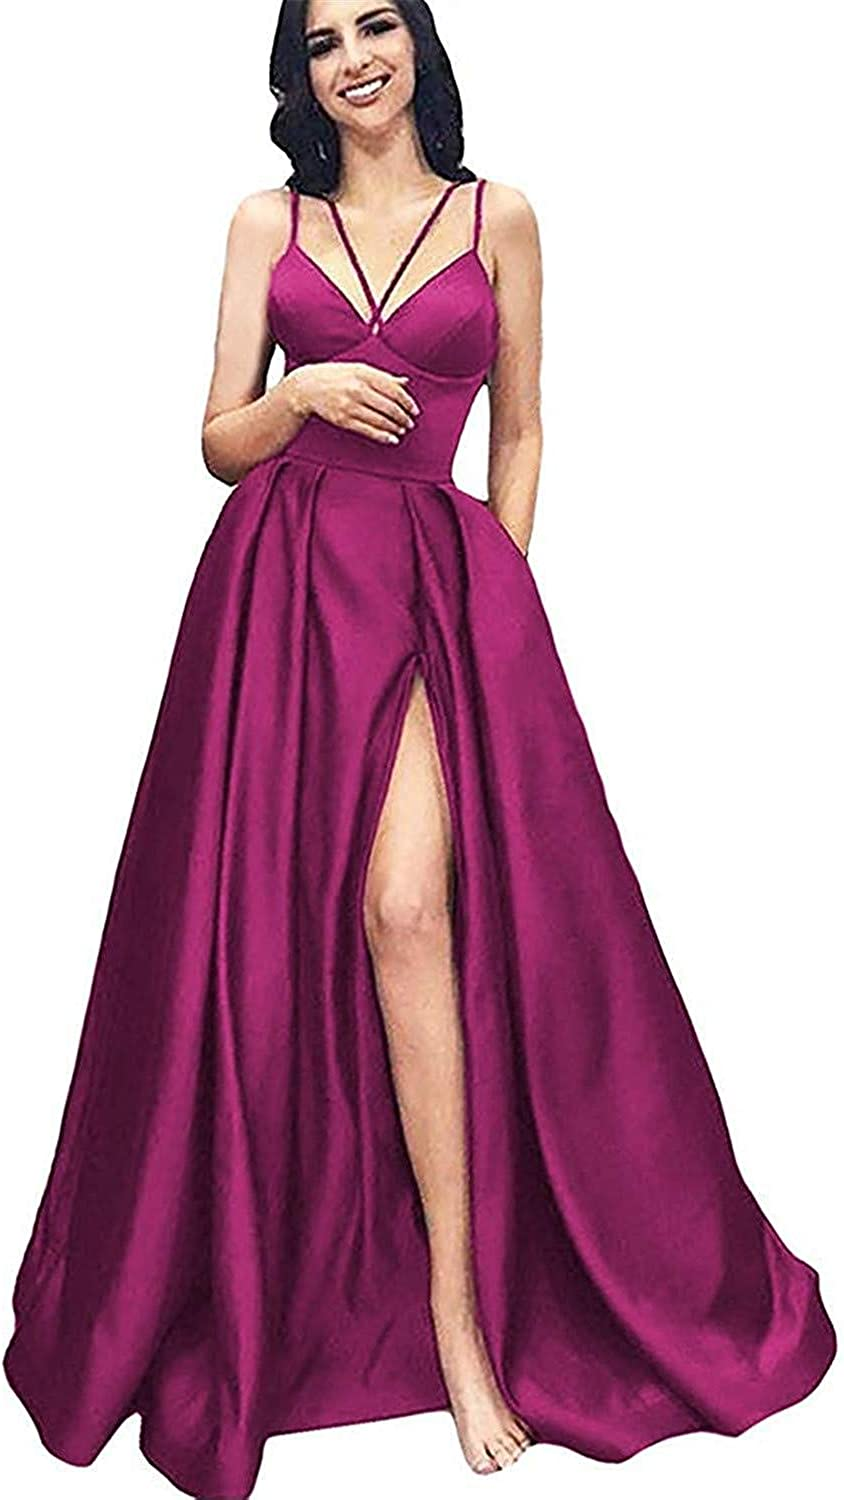 CCBubble Womens Long Satin Prom Dresses High Slit Spaghetti Straps V Neck Evening Formal Party Dress with Pockets